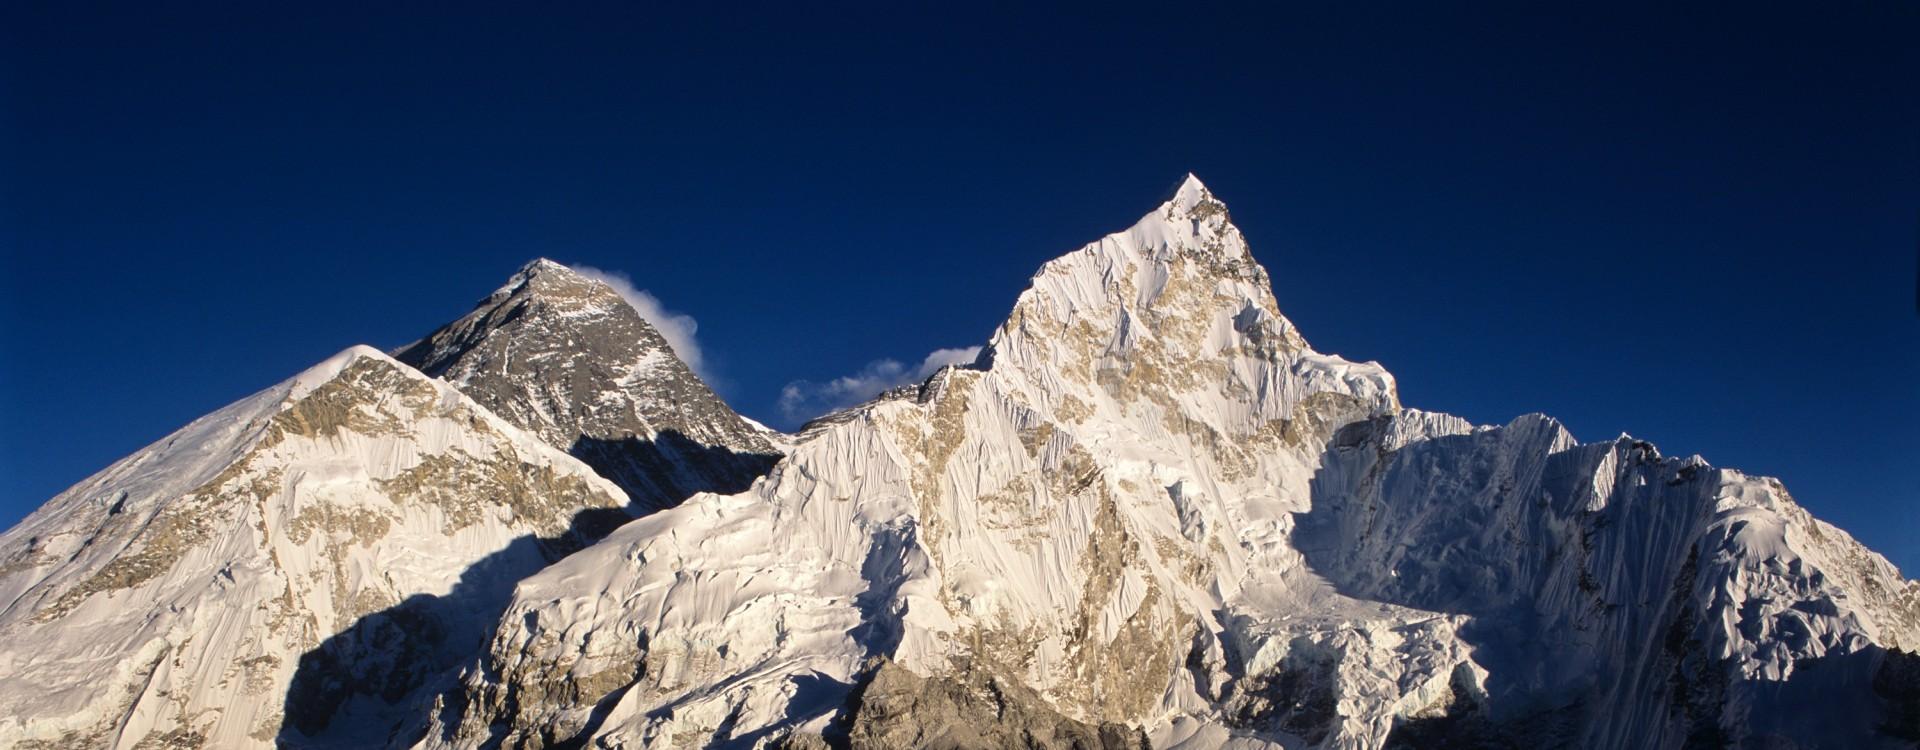 1470321759-1447349342-1447349324-1447349301-1447349232-everest-from-kala-patar